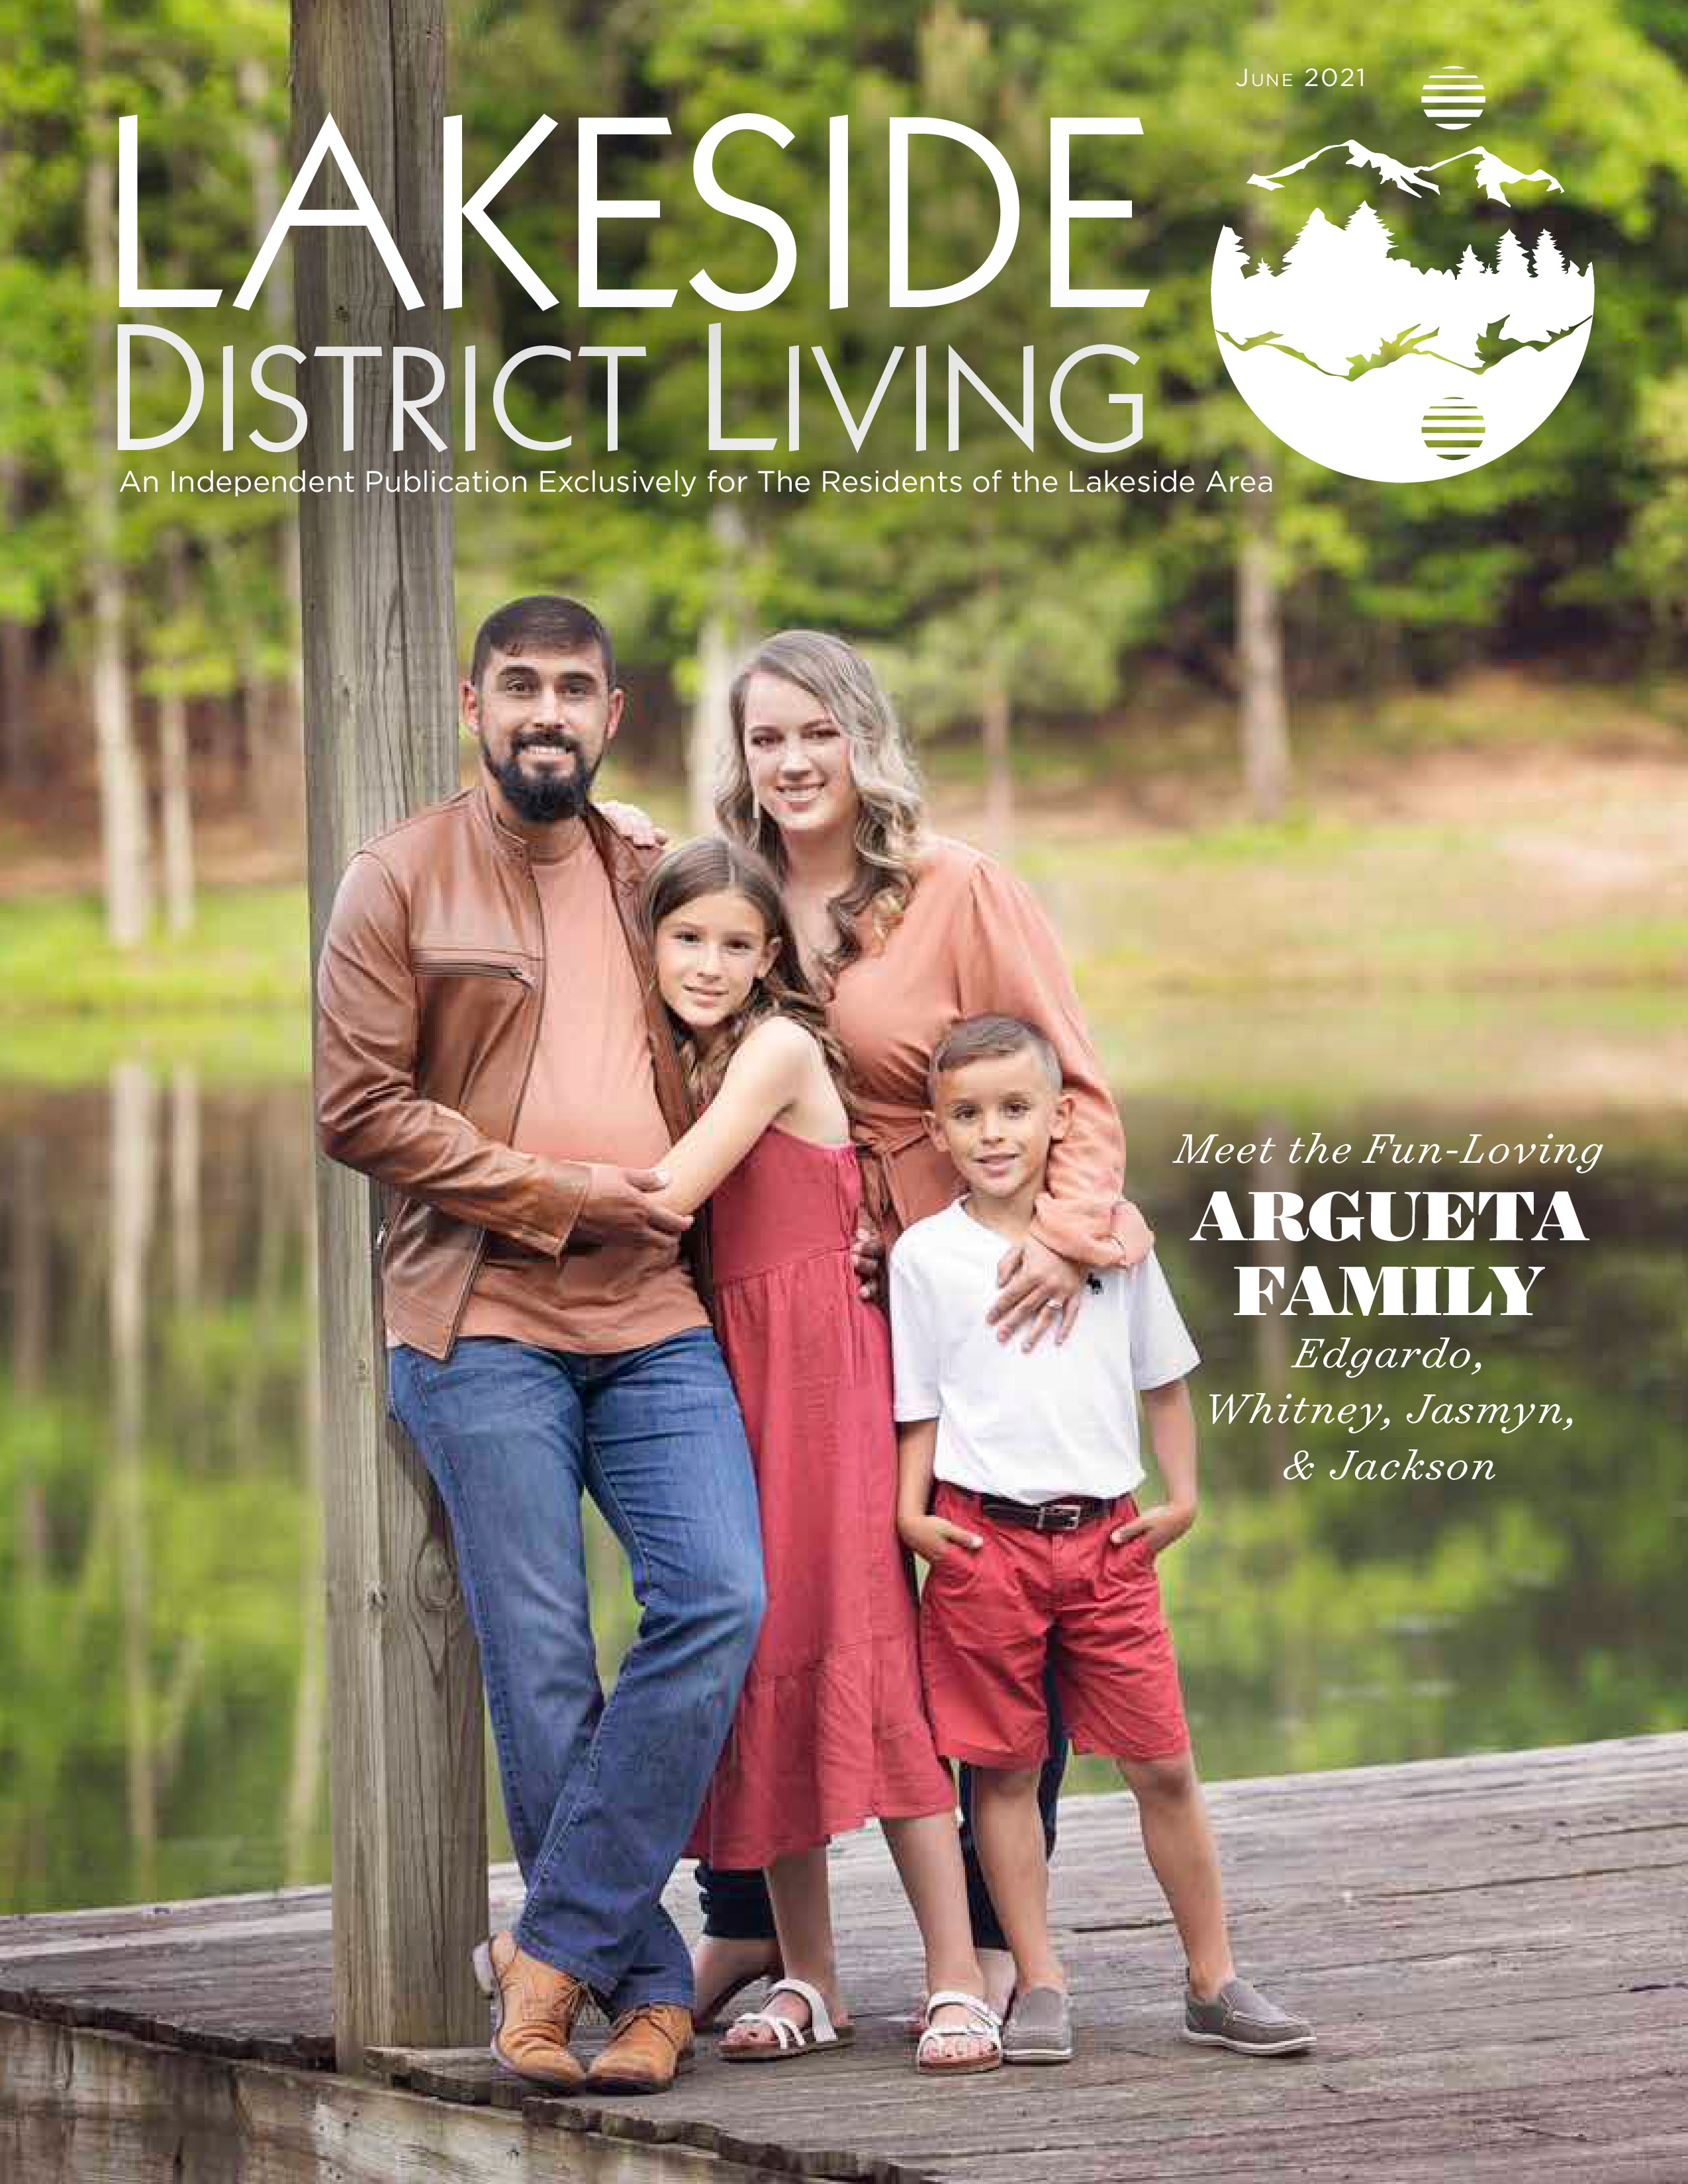 Lakeside District Living 2021-06-01